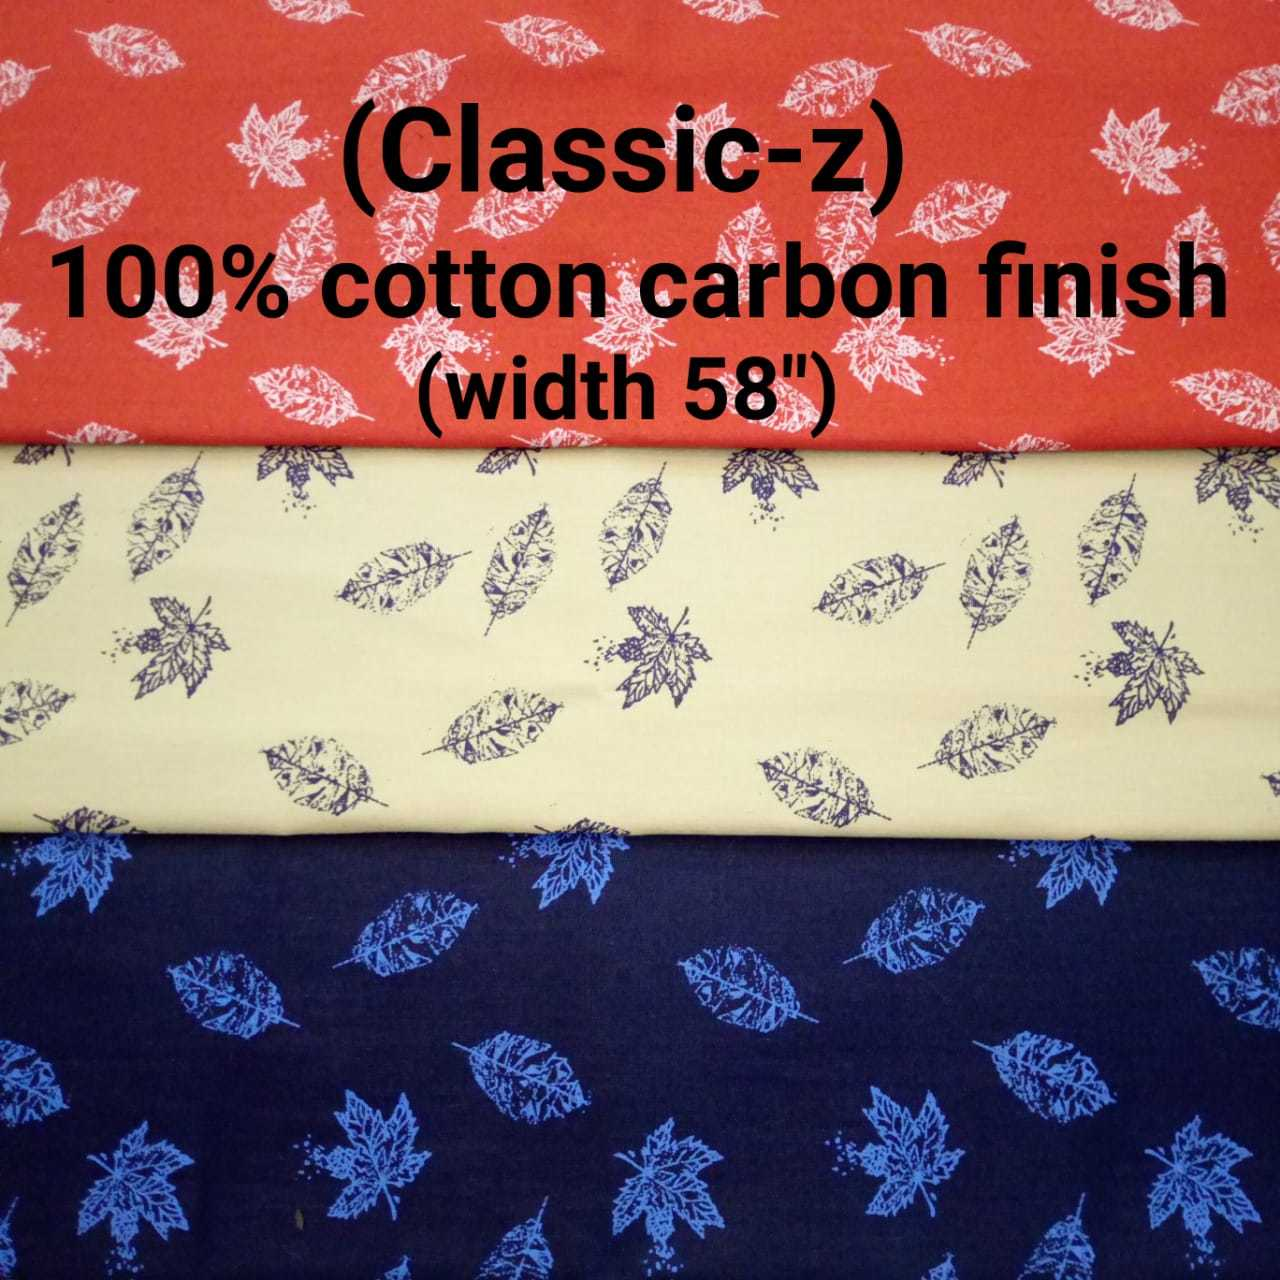 CLASSIC-Z 100% cotton carbon finish